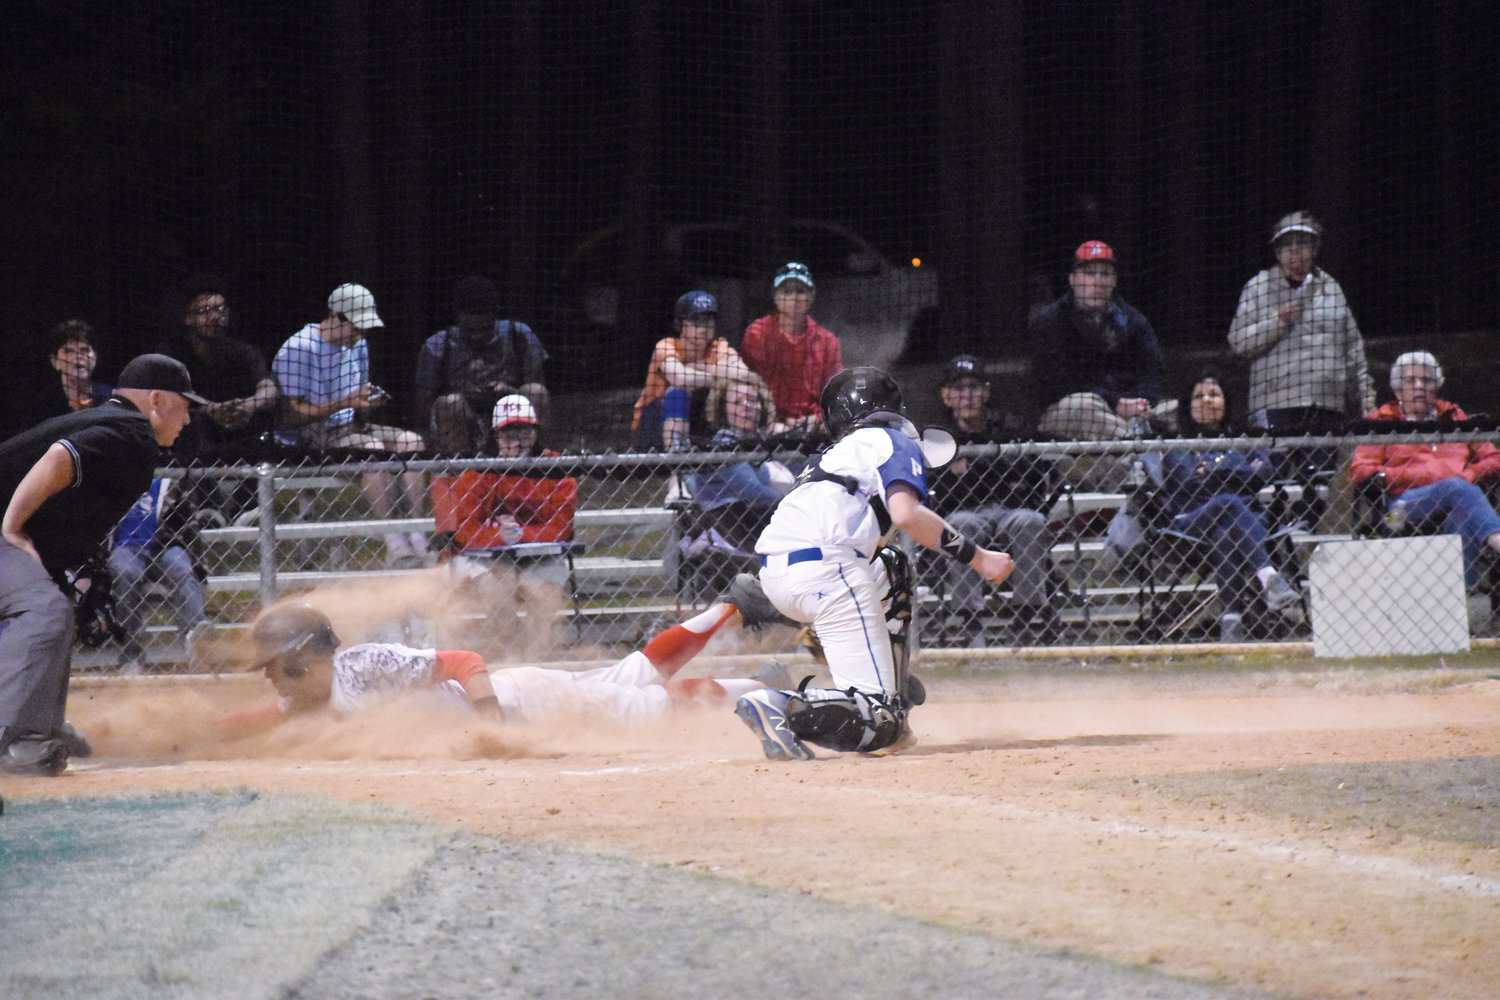 Kelly Snow | The Courier-Times.Roxboro Community School's Michael Clayton dlves home safely just in front of a tag in the seventh inning of Thursday's victory against Person. Clayton scored the eventual game-winning run and struck out all six batters he faced to get the victory on the mound.